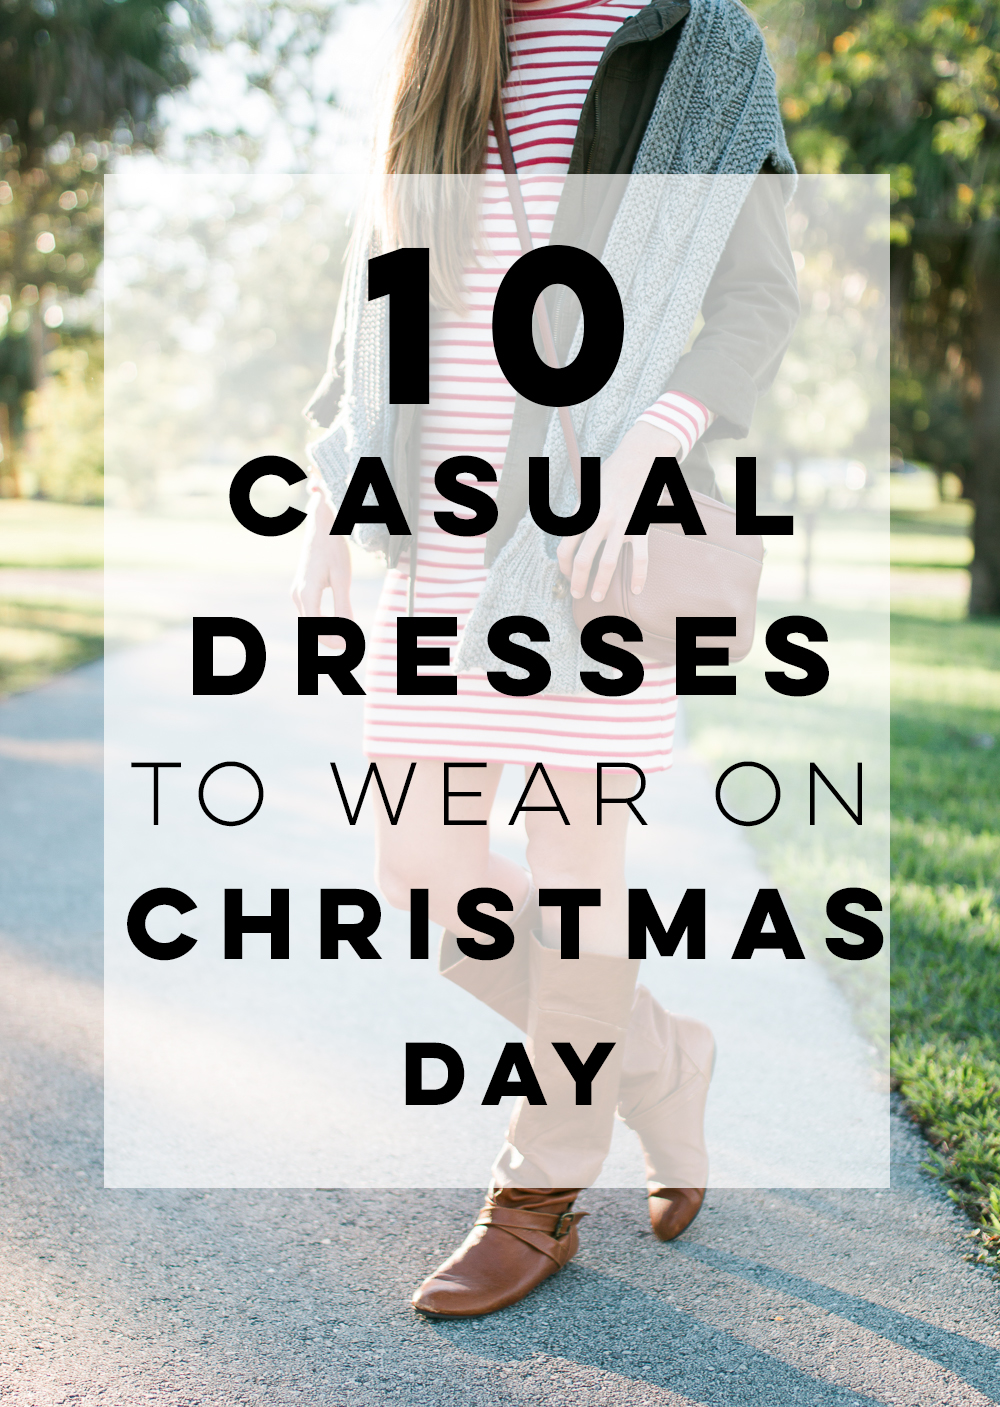 10 Casual Dresses to Wear on Christmas Day